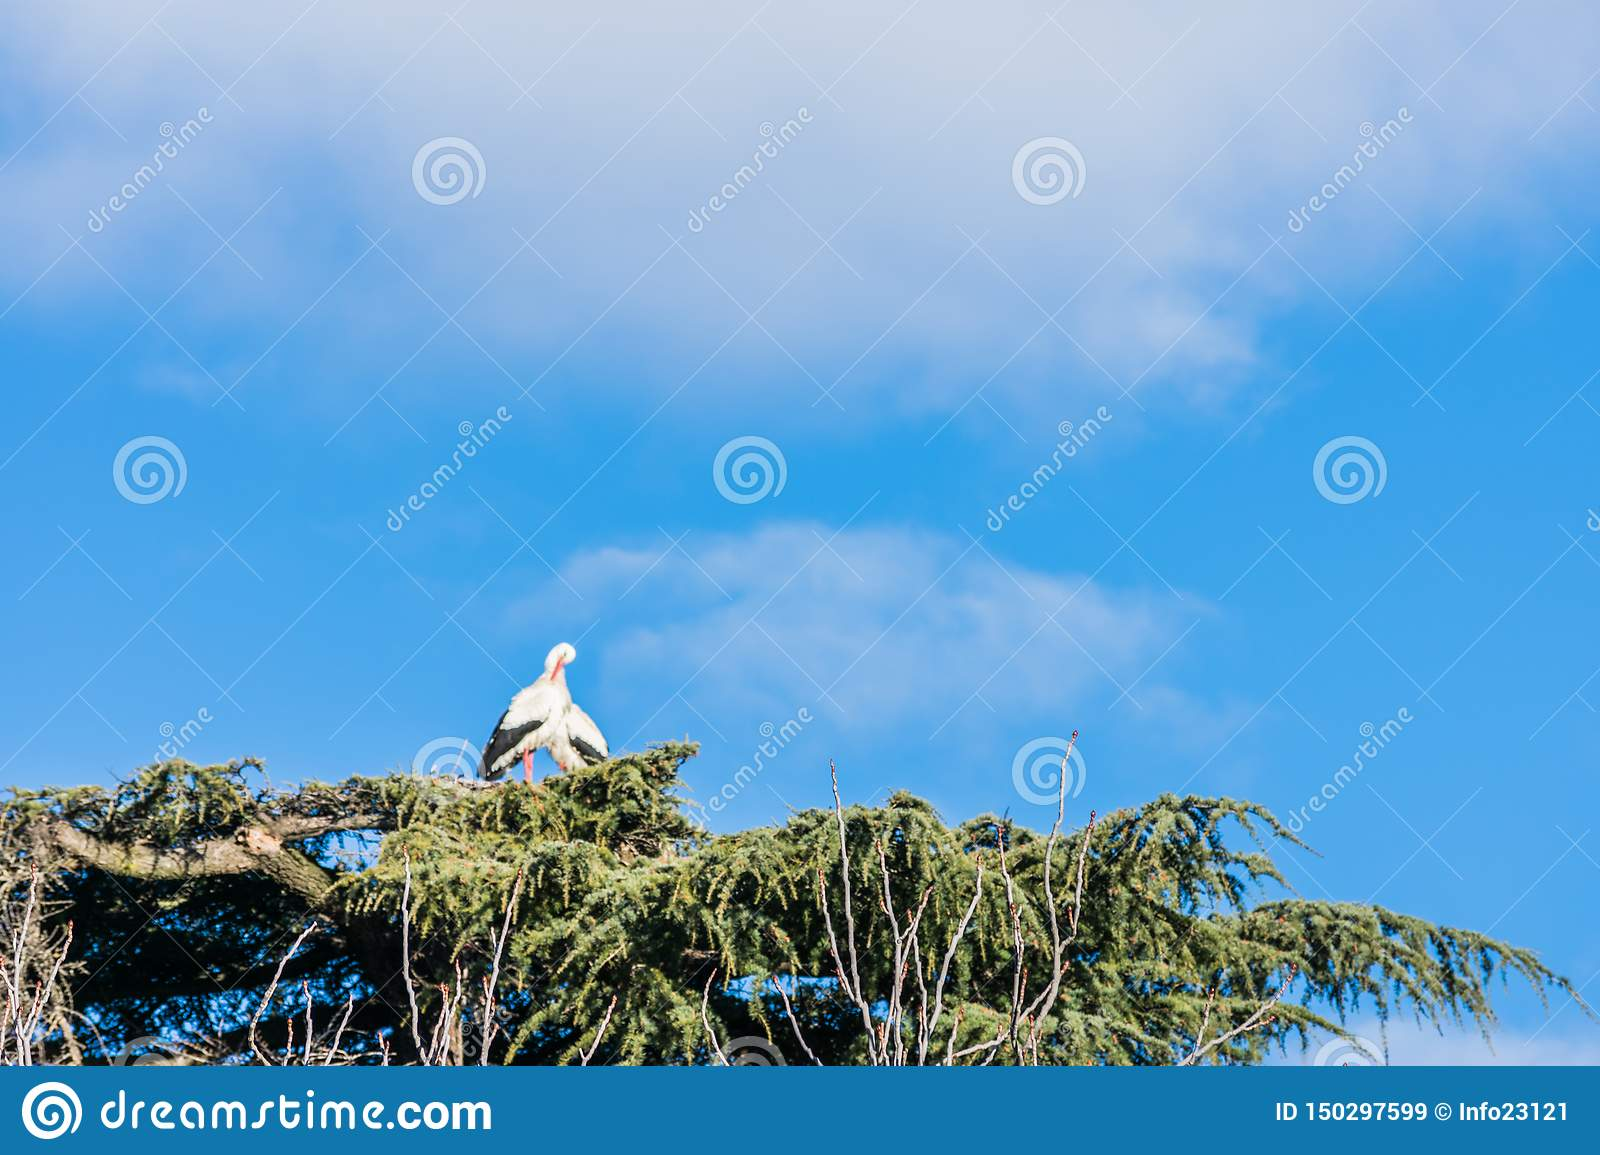 Stork in its nest on a tree